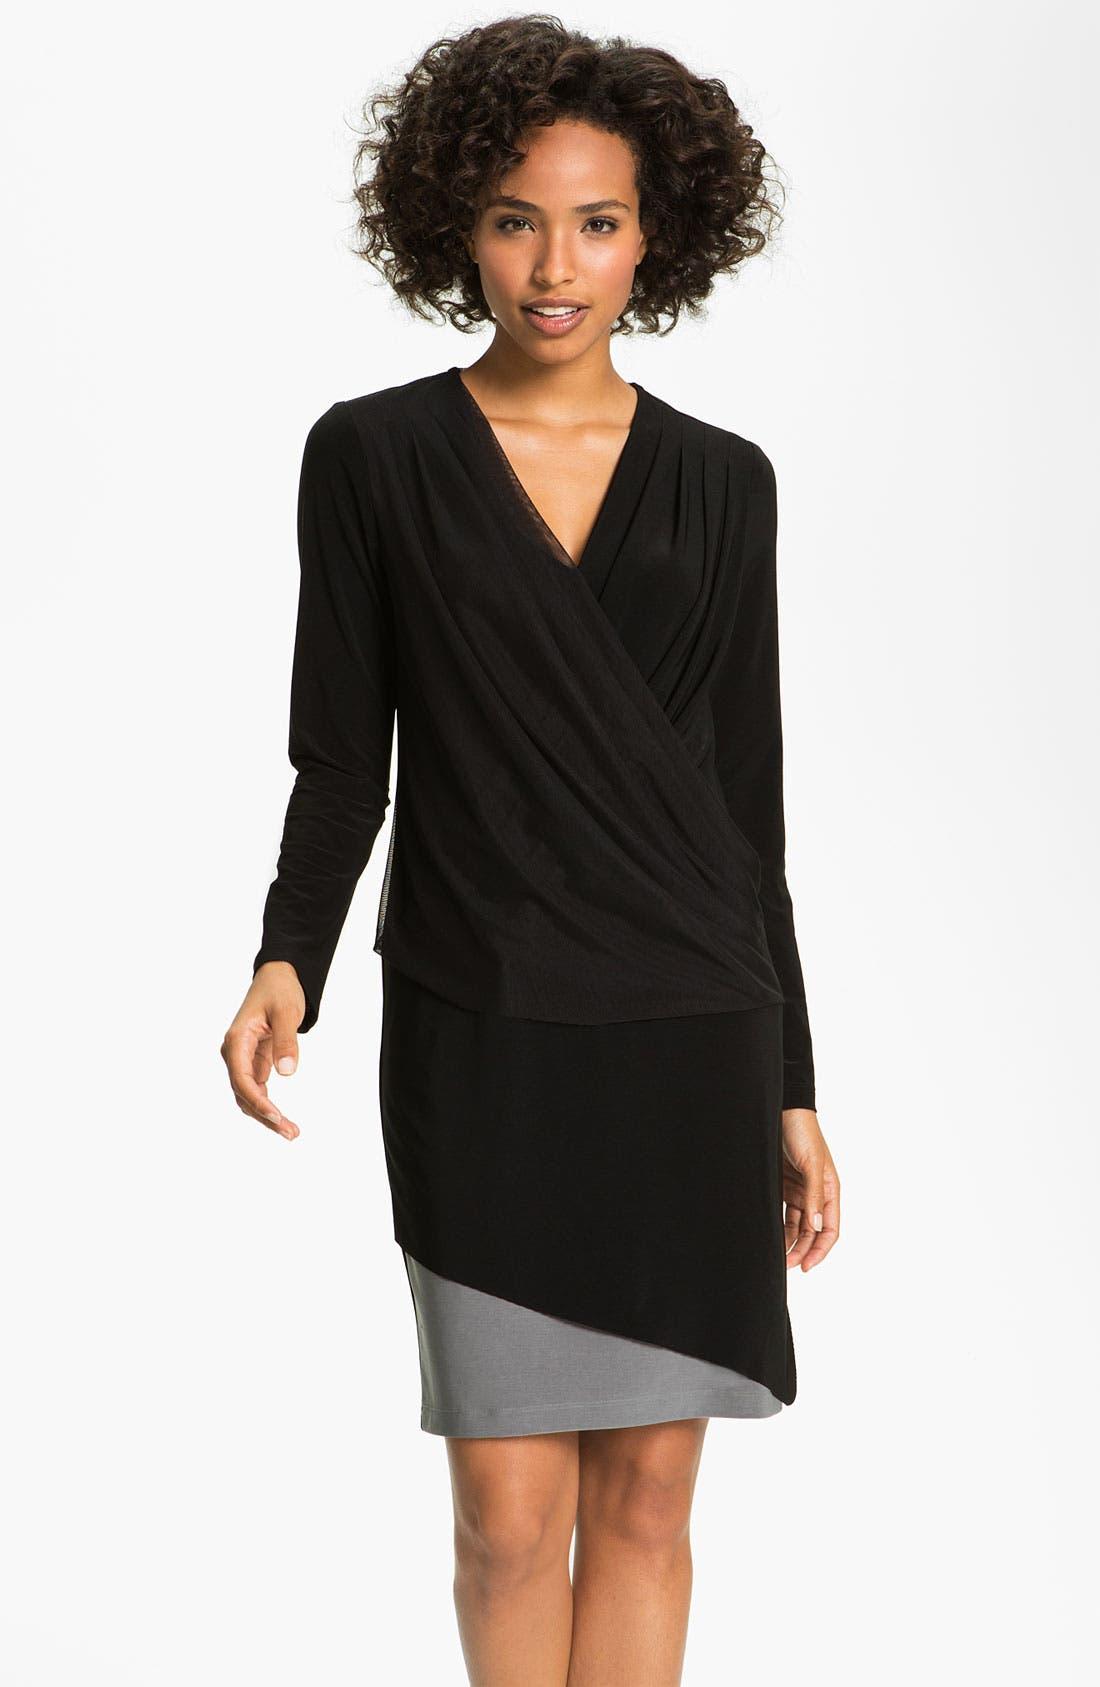 Alternate Image 1 Selected - Alex & Ava Surplice Mesh & Jersey Dress (Petite)